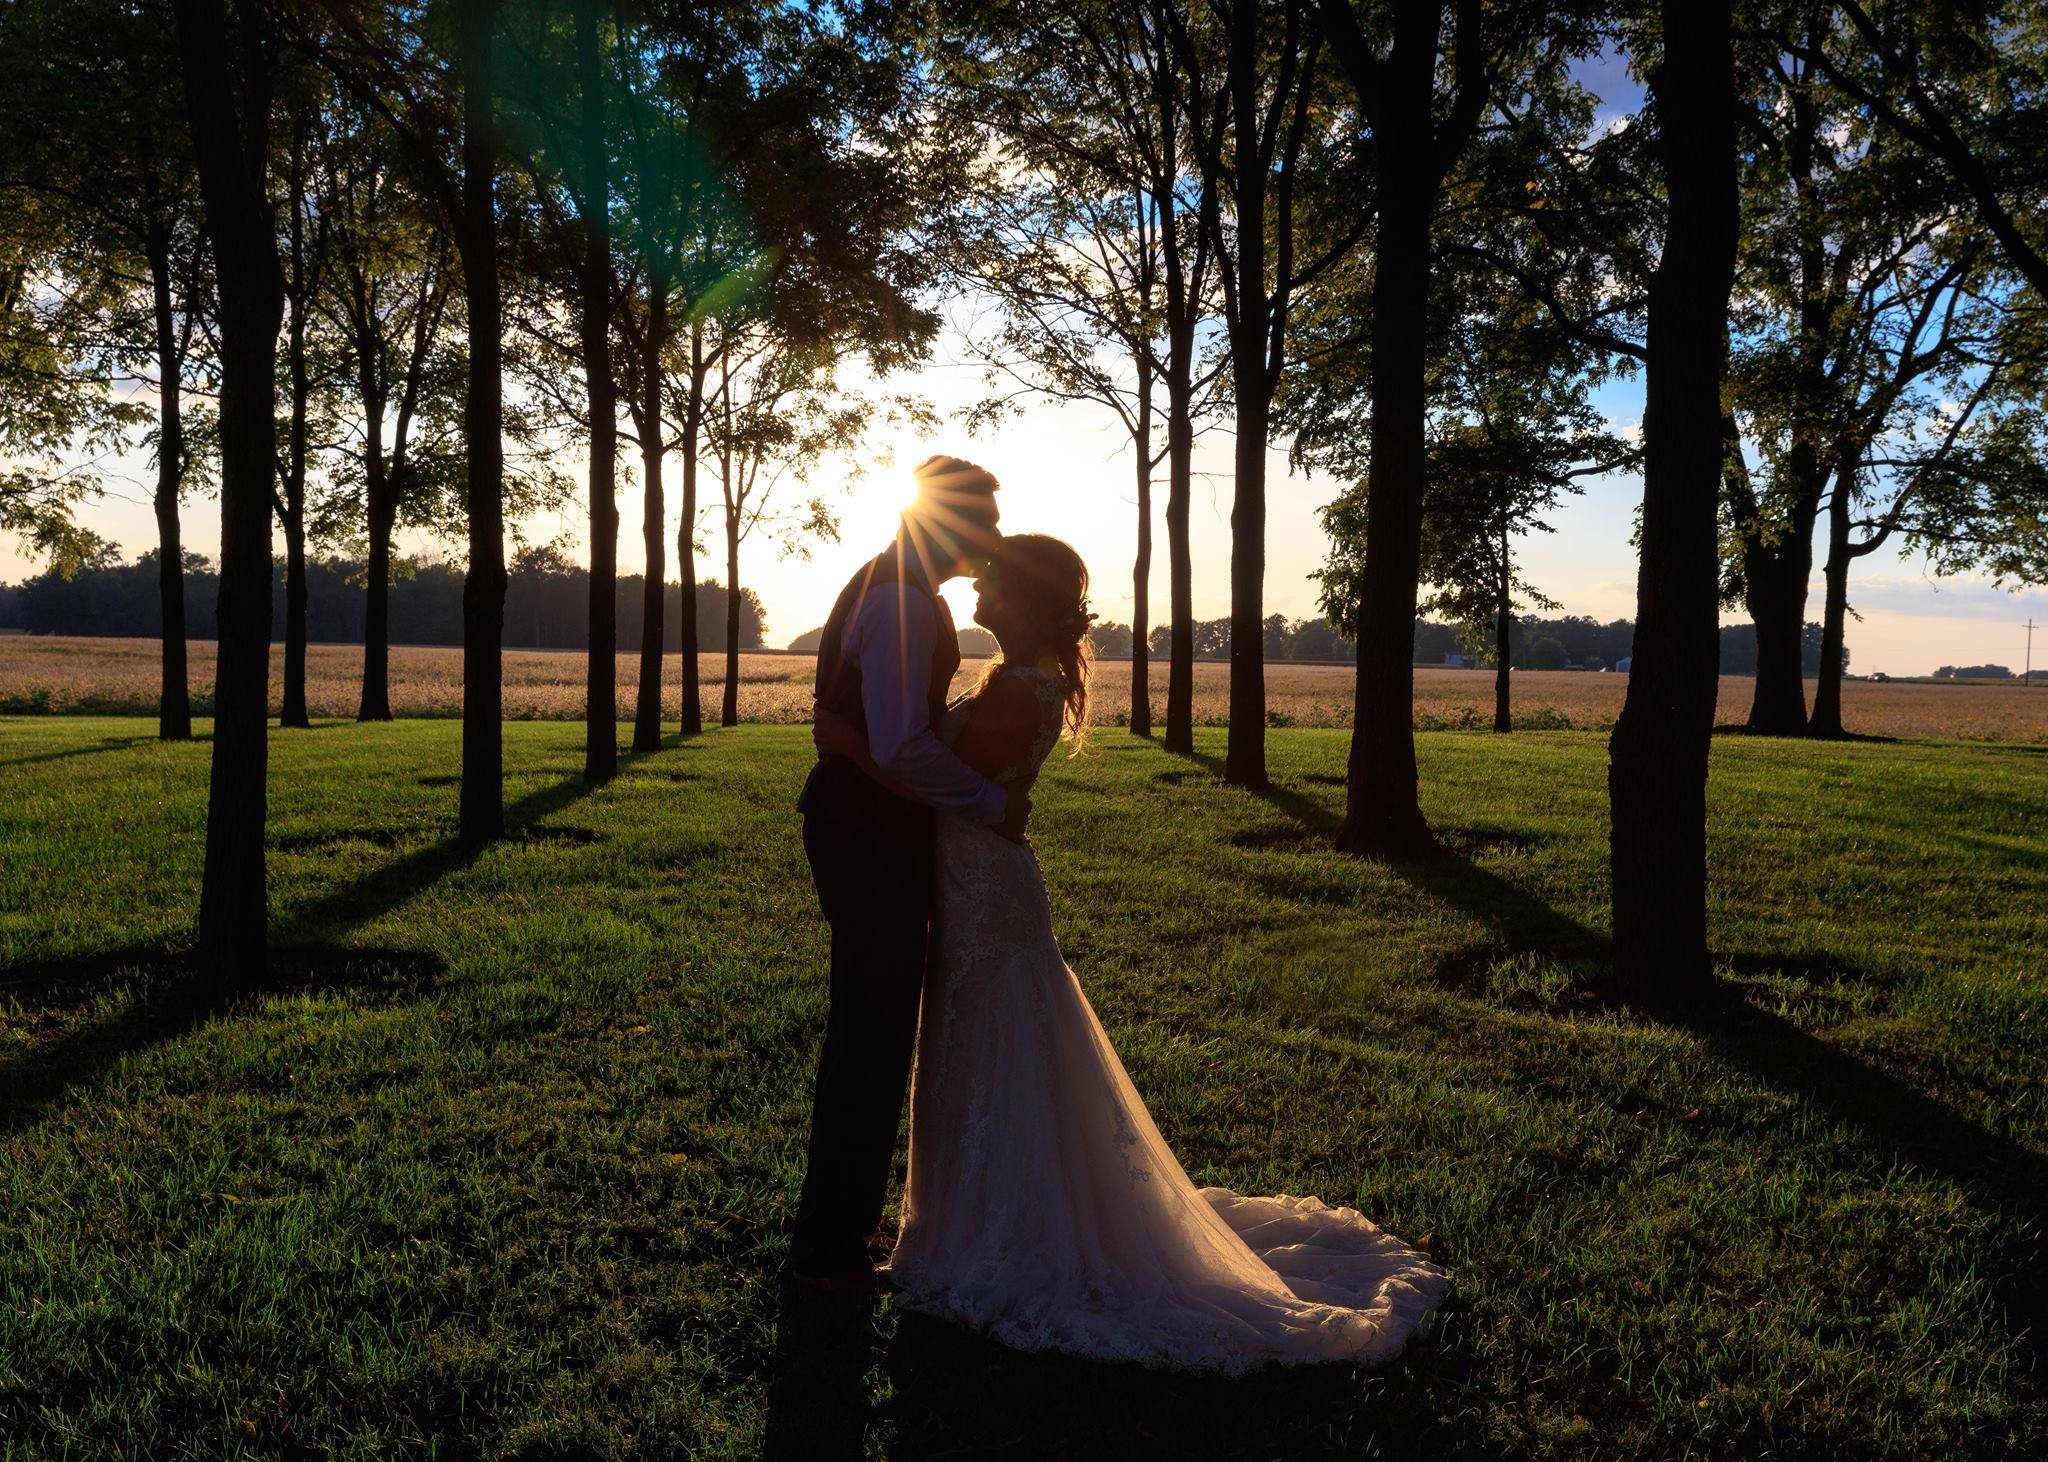 Bride and Groom Sunset Picture on their wedding day